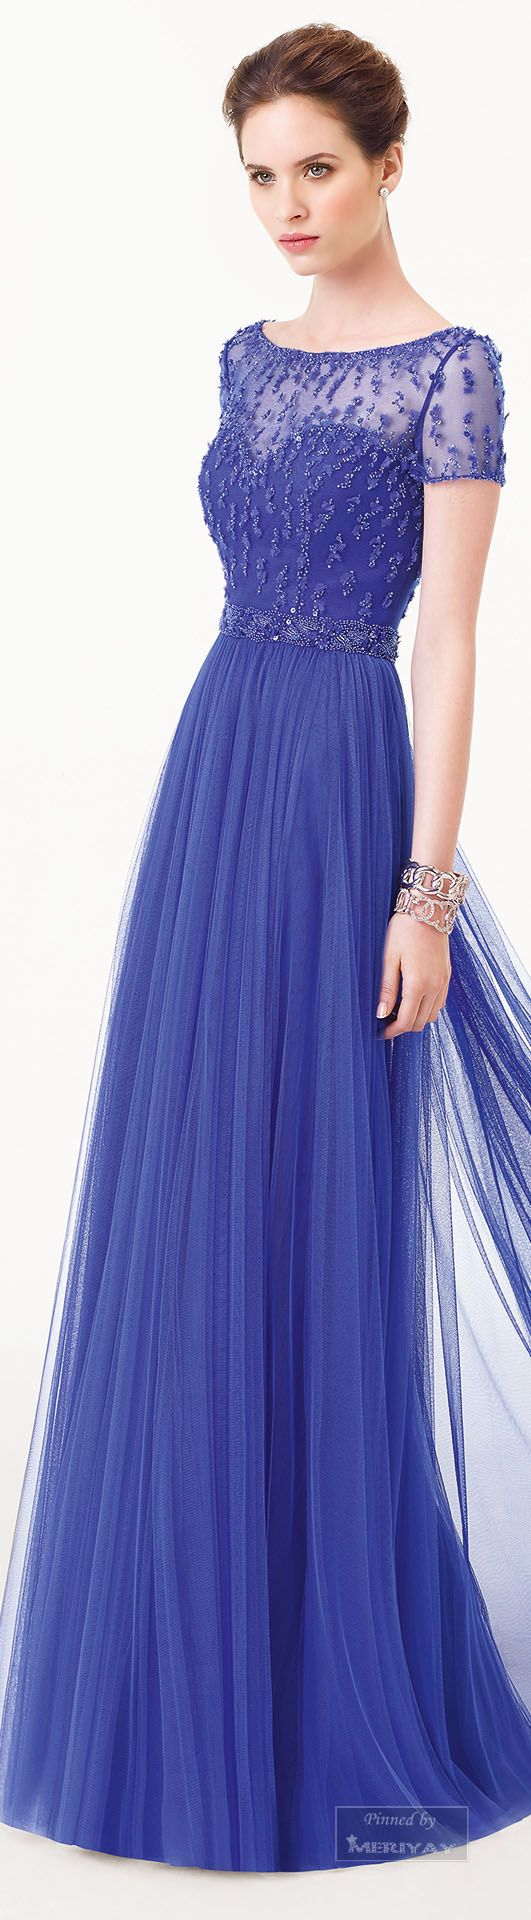 Love the color - Aire Barcelona prom dresses 2015 http://www.wedding-dressuk.co.uk/prom-dresses-2015-uk63_1_80/p2